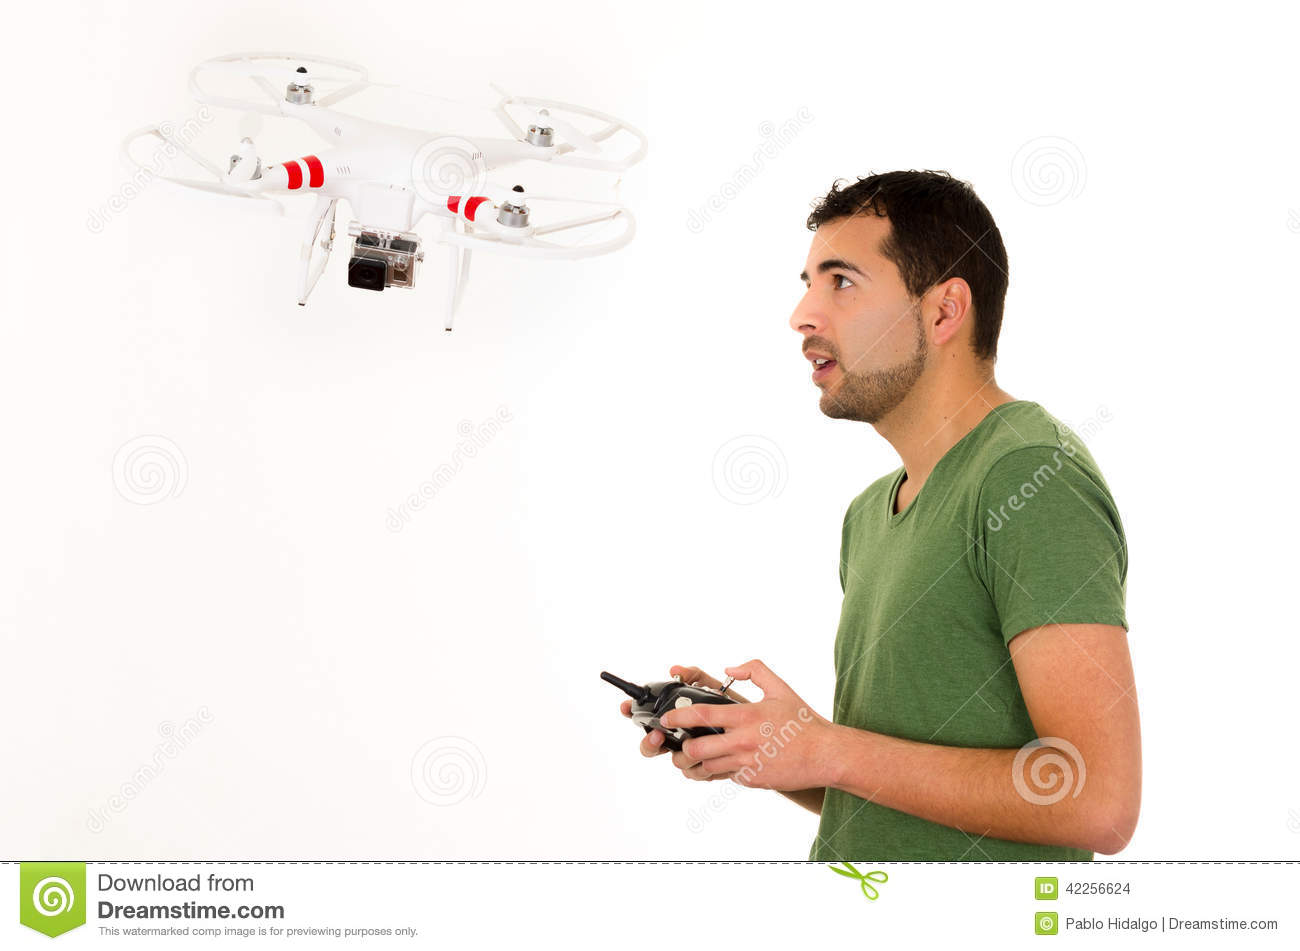 four propeller drone with Stock Photo Young Man Quadcopter Drone Playing Isolated White Image42256624 on Vrde Developing Aero Diesel Engine For together with 1230 Goliath A Gas Powered Quadcopter likewise Act389 furthermore Aerospace Fundamentals Of Flight Part 1 additionally I M Not Ready Close Aspiring Model Left Bruised Eye Hit Face DRONE.